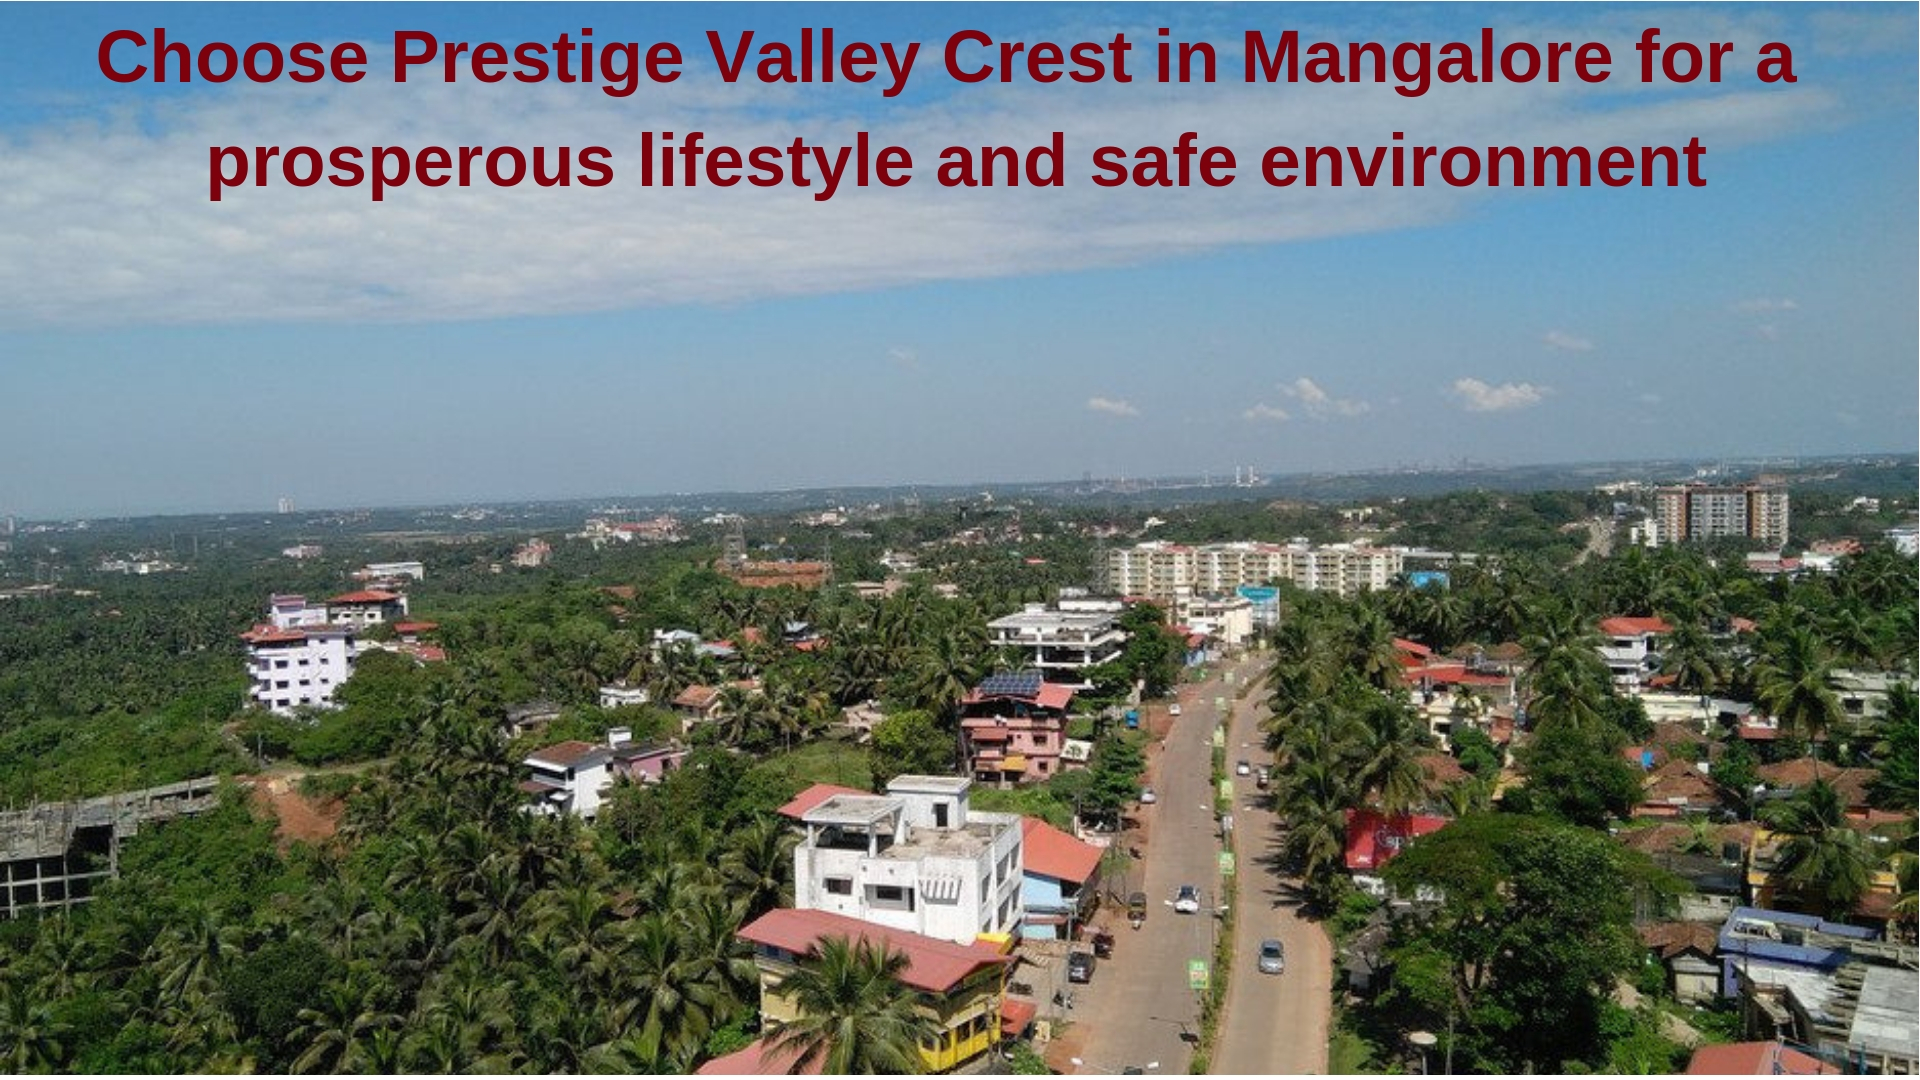 Choose a prosperous lifestyle and safe environment in Mangalore